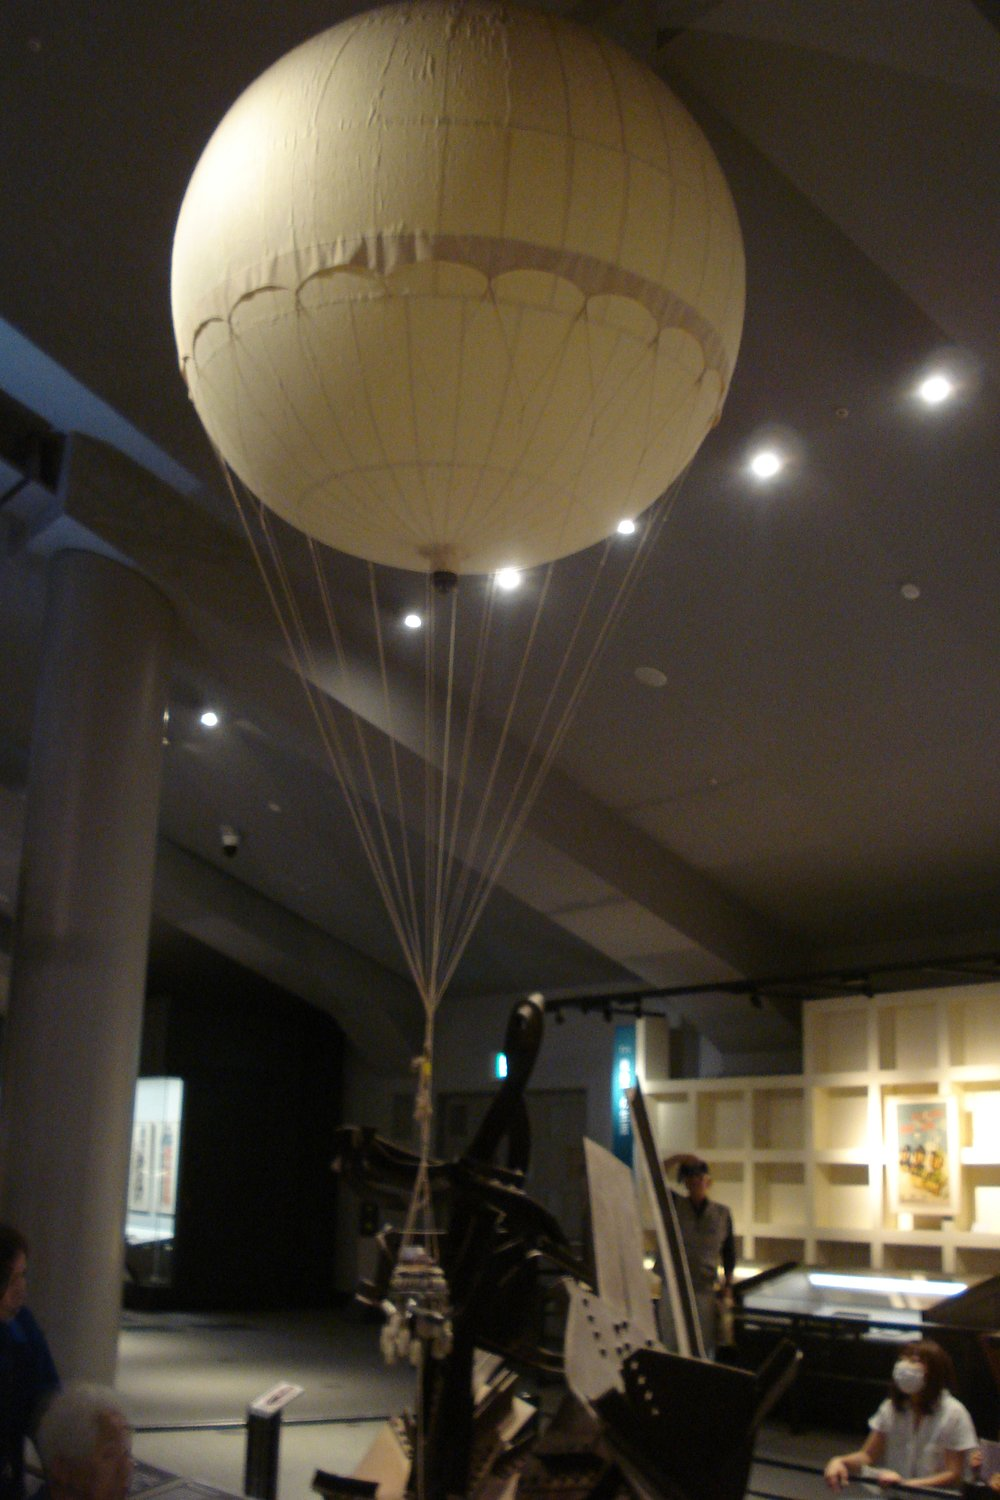 Fire Balloon display, Tokyo National Museum.The balloon is one-third the size of the actual 1944 balloons.The original balloons were 2 times this size.If you are ever in Tokyo, this museum (also known as the Edo Museum) is one of the best museums in the world.